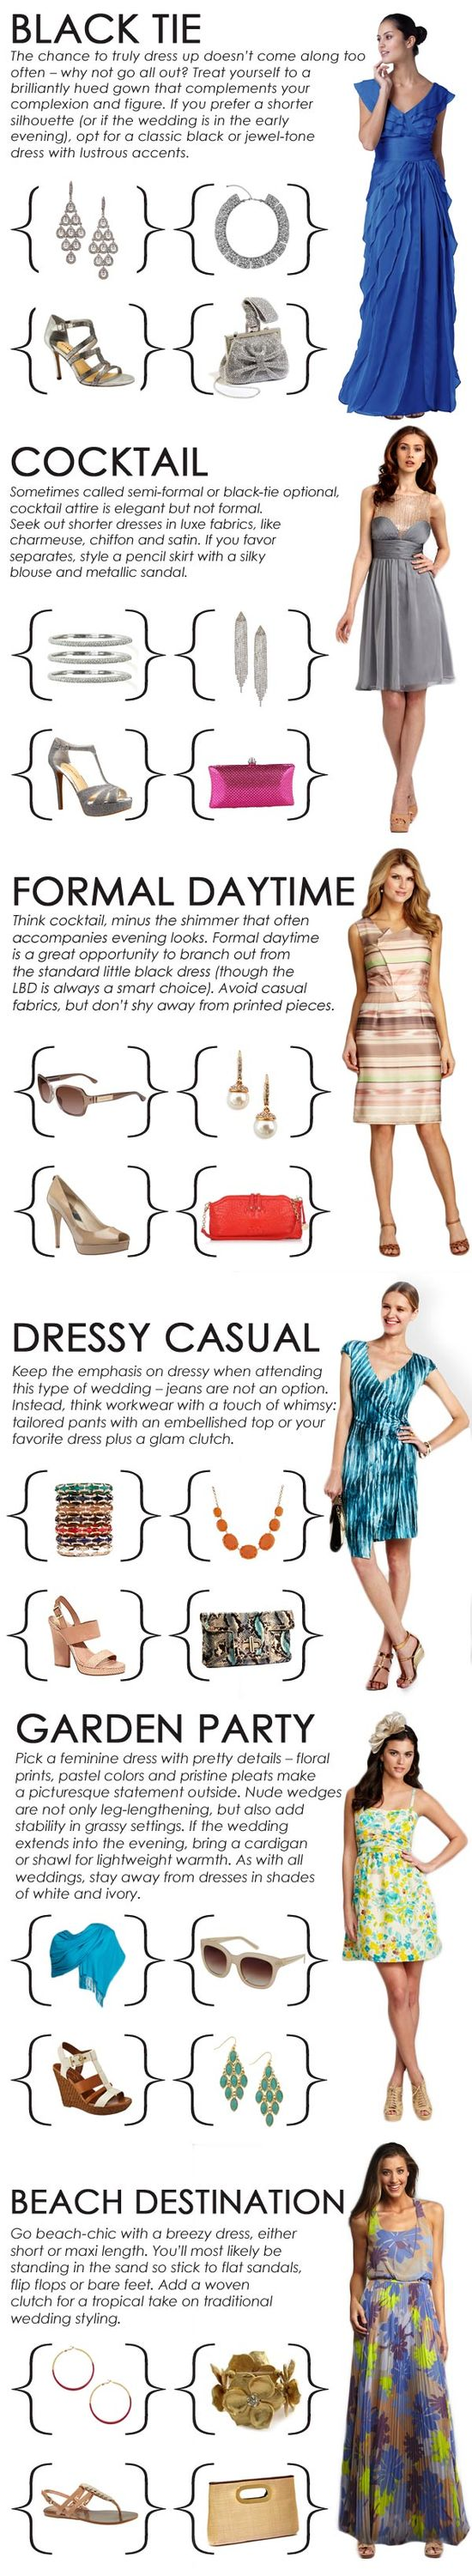 Be a beautiful wedding guest when you shop consignment, resale or thrift!